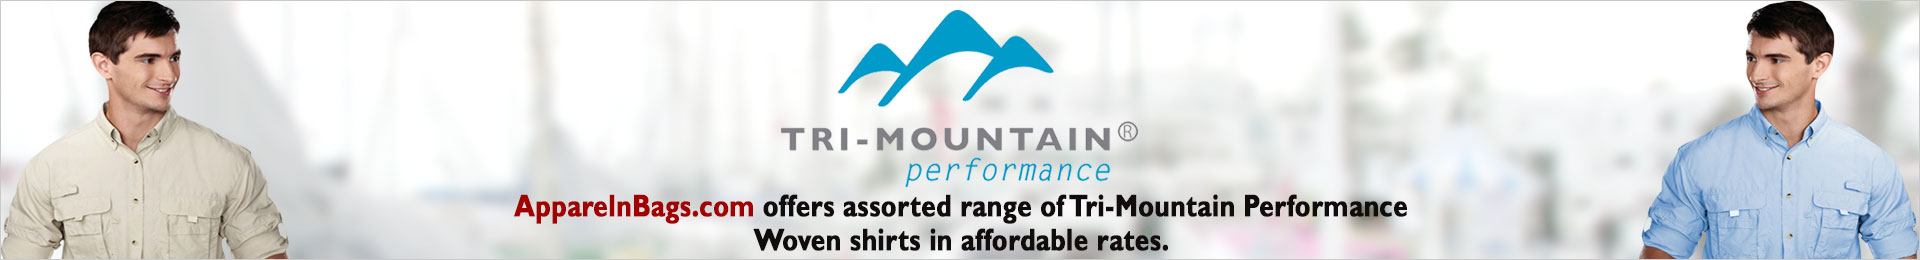 Tri-Mountain Performance Woven And Dress Shirts